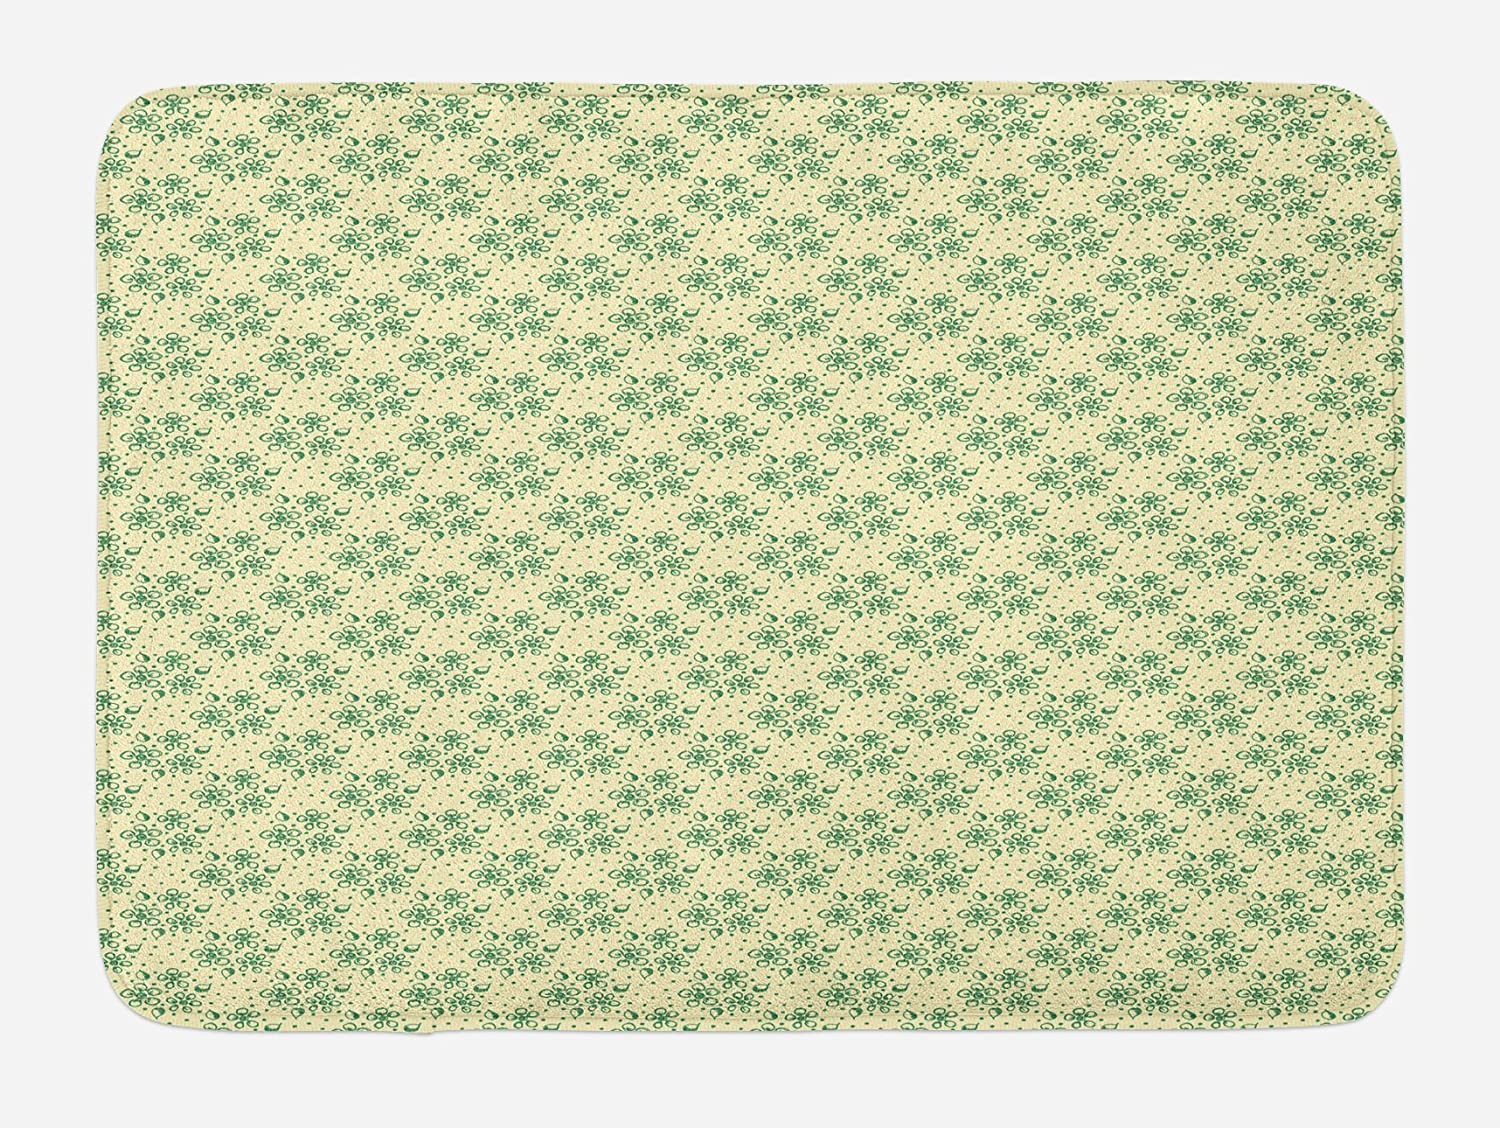 Ambesonne Leaves Bath Mat, Foliage and Flower Arrangement on a Hand Drawn Dotted Pale Background, Plush Bathroom Decor Mat with Non Slip Backing, 29.5